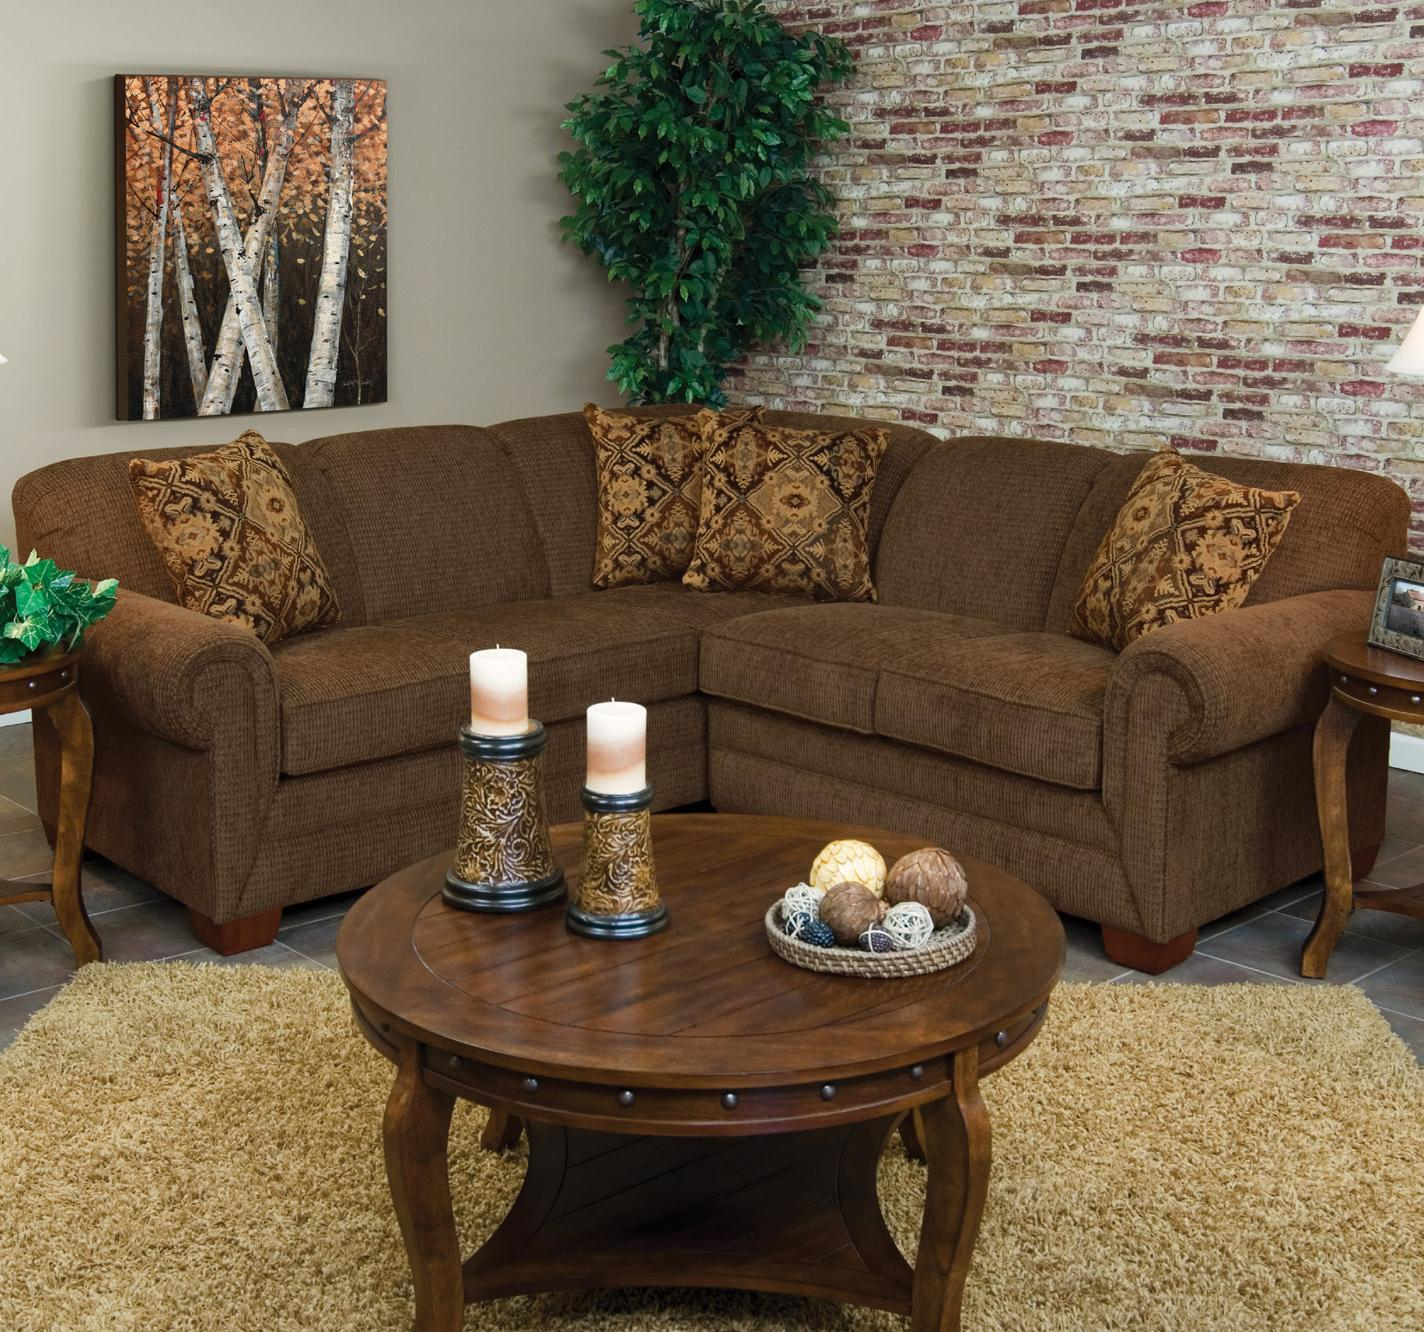 England monroe 2 piece laf sofa sectional rooms and rest for England furniture sectional sofa